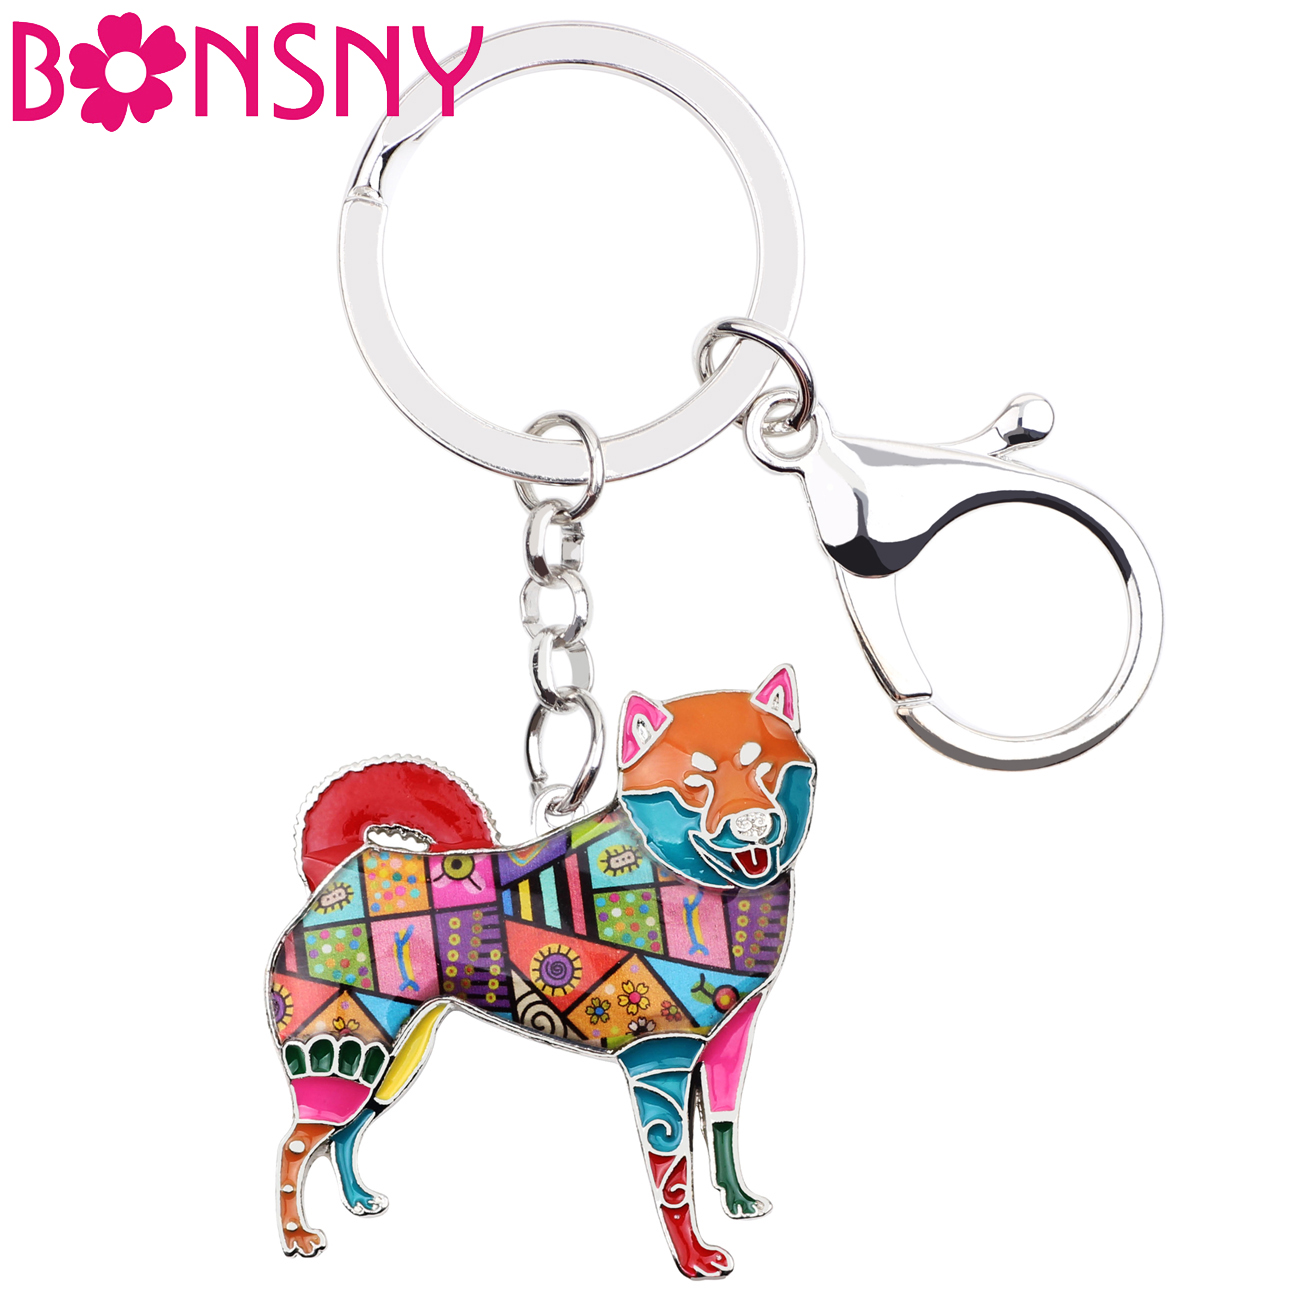 Bonsny Metal Shiba Inu Key Chain Key Ring Bag Charm Enamel Dog Keychain Accessories Souvenir Fashion Animal Jewelry For Women